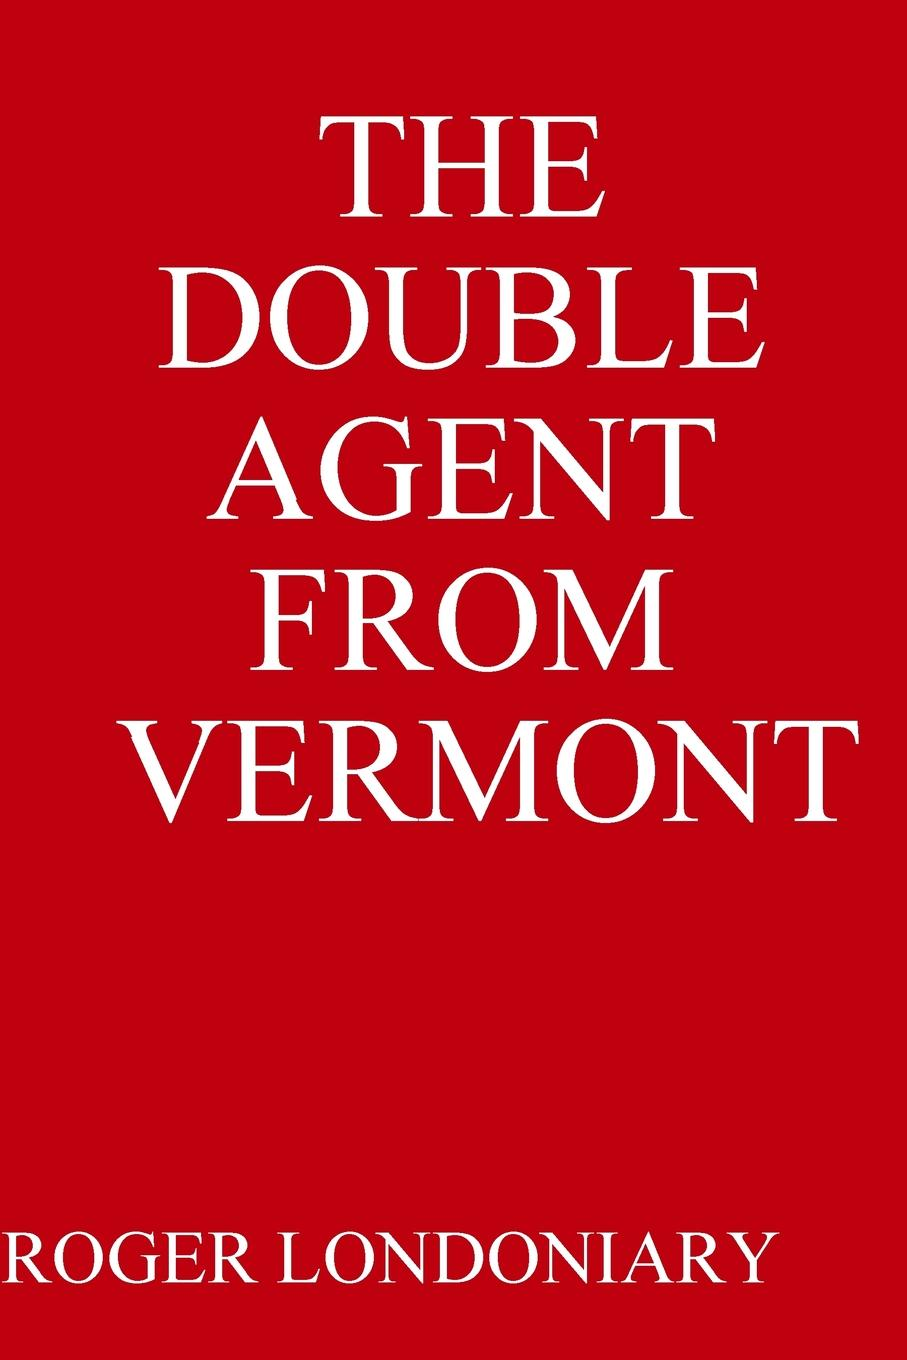 Фото - ROGER LONDONIARY THE DOUBLE AGENT FROM VERMONT agent based snort in distributed environment